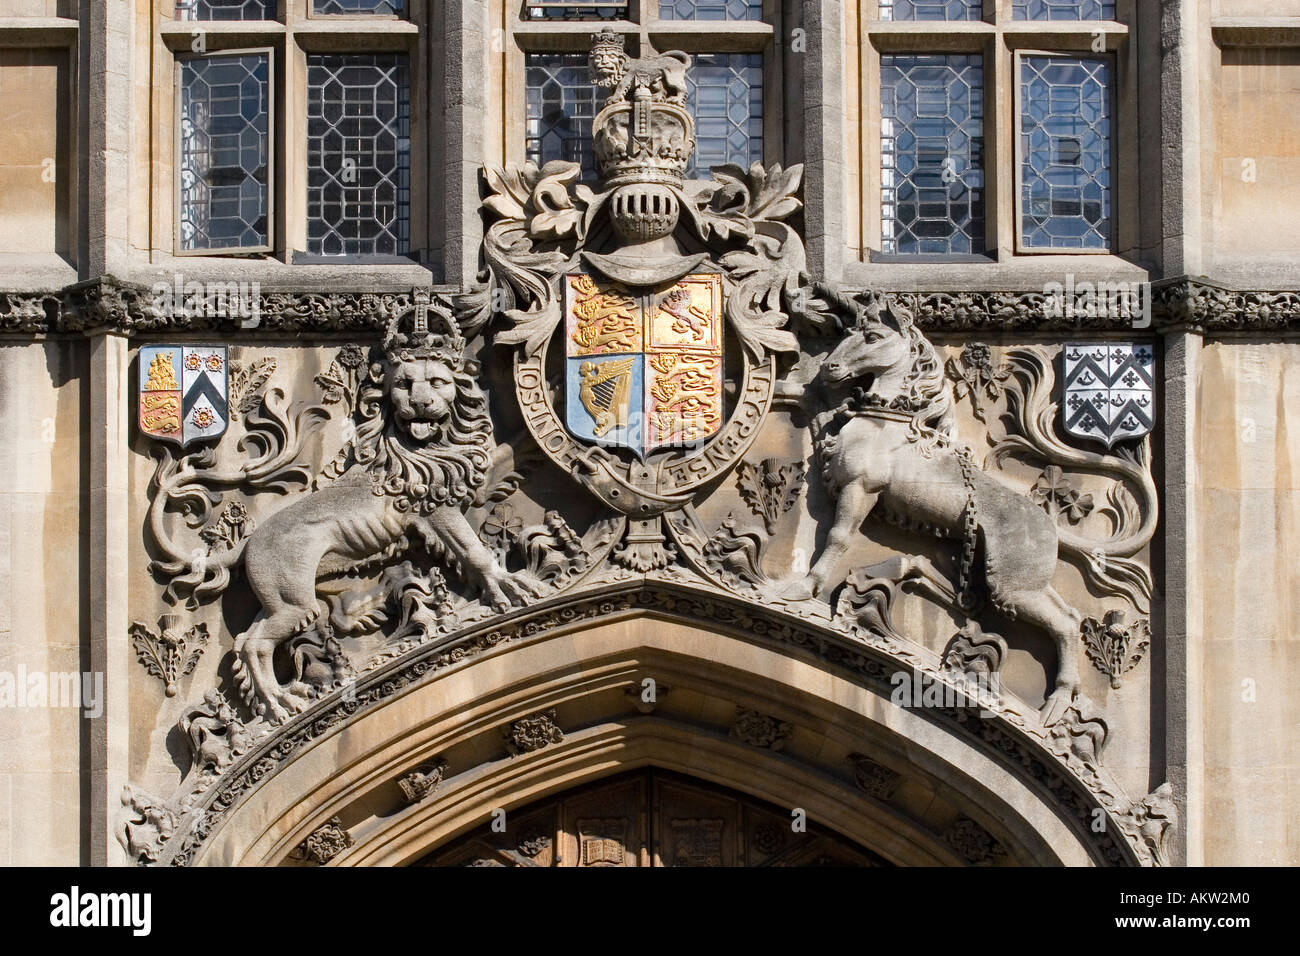 Royal coat of arms above entrance to Brasenose College Oxford Stock Photo